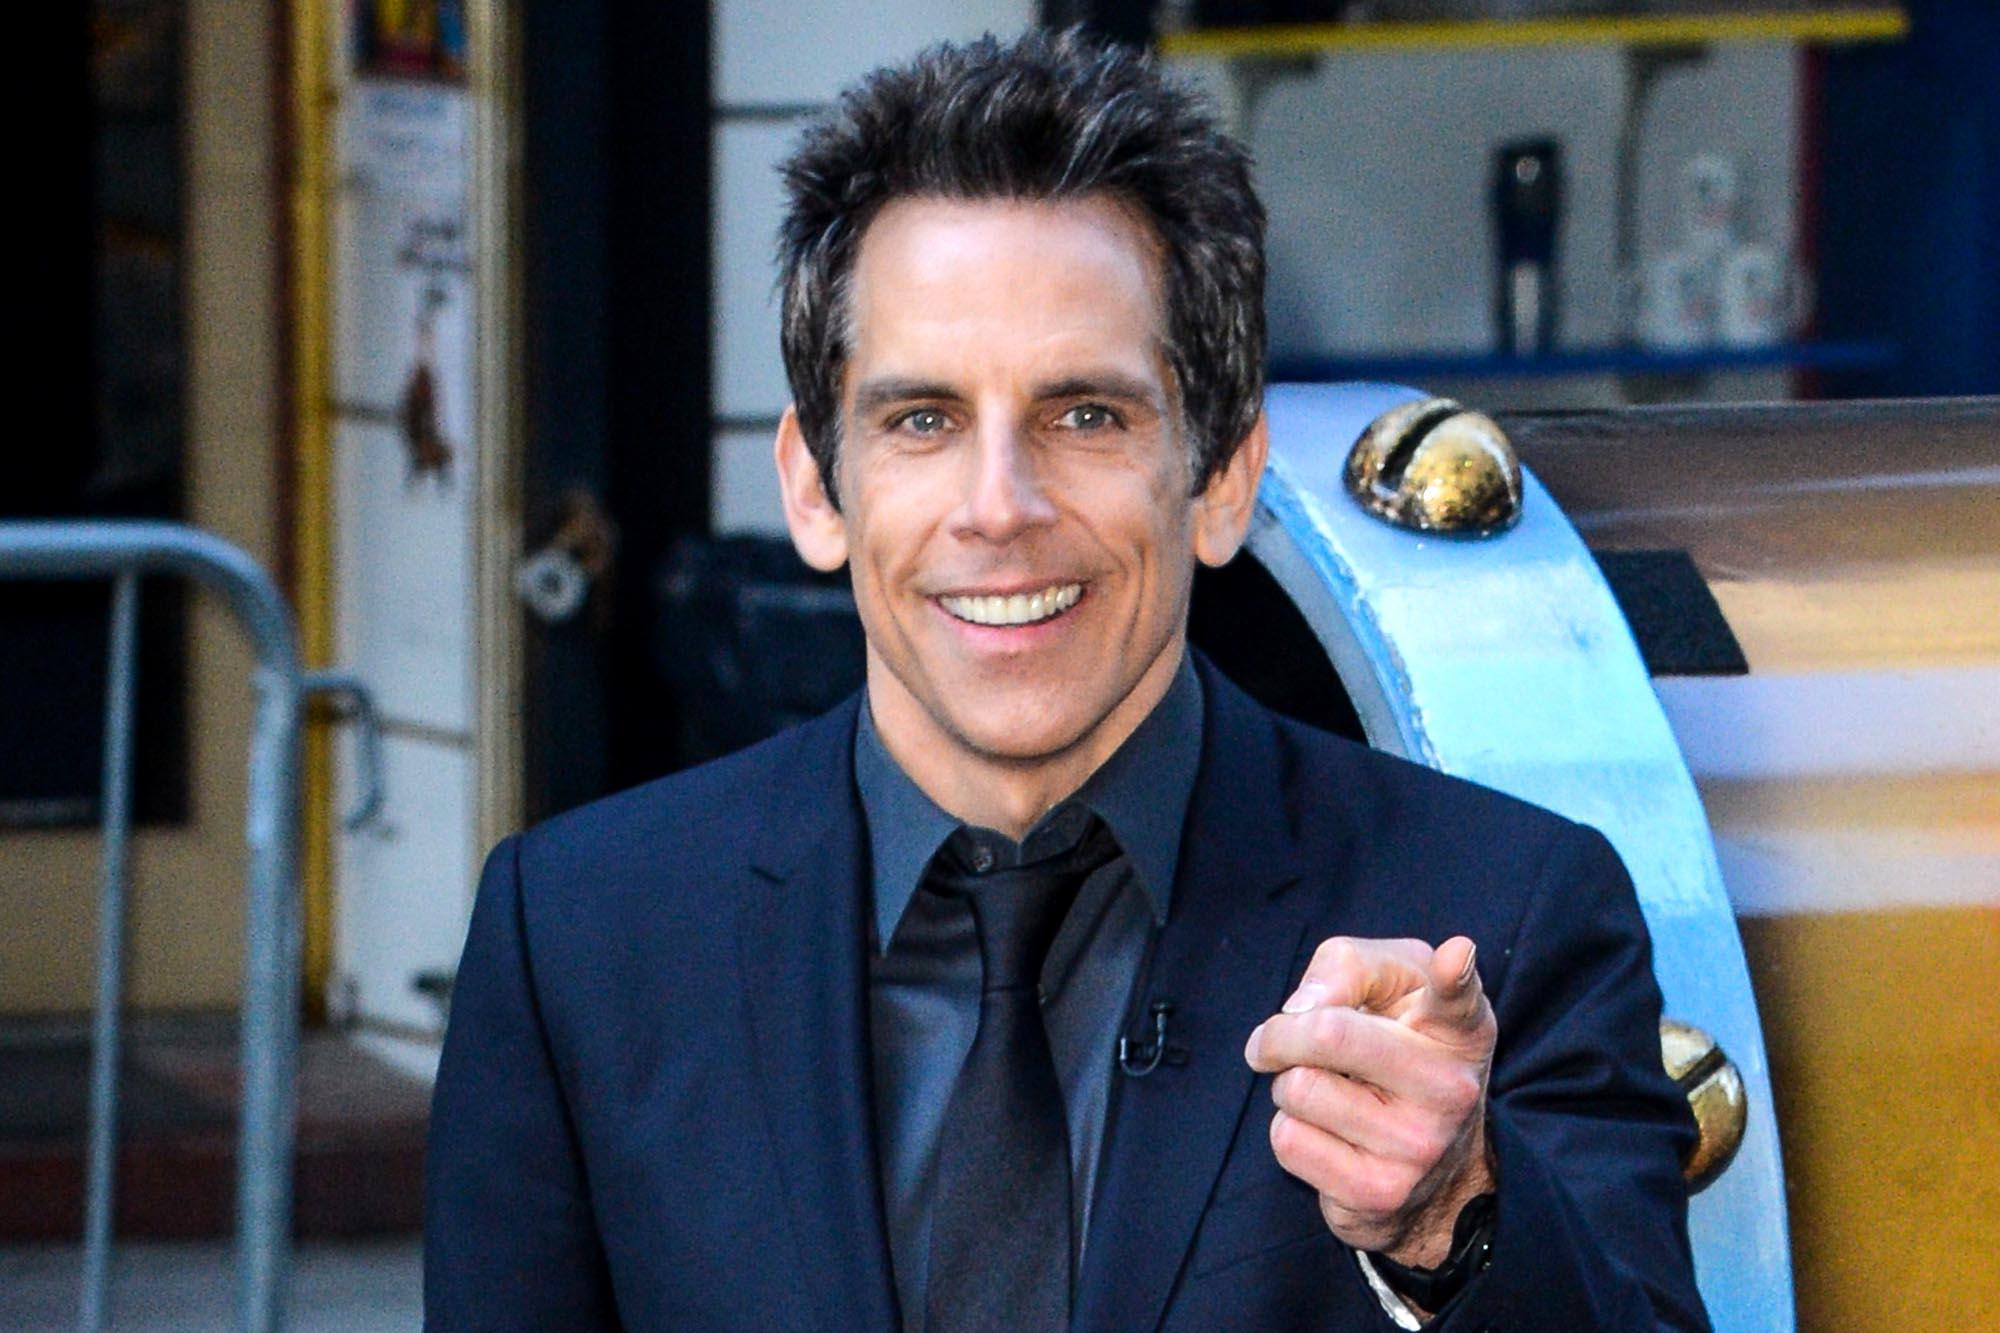 Joan Rivers Hated Ben Stiller, Actor Finds Out Why On Howard Stern